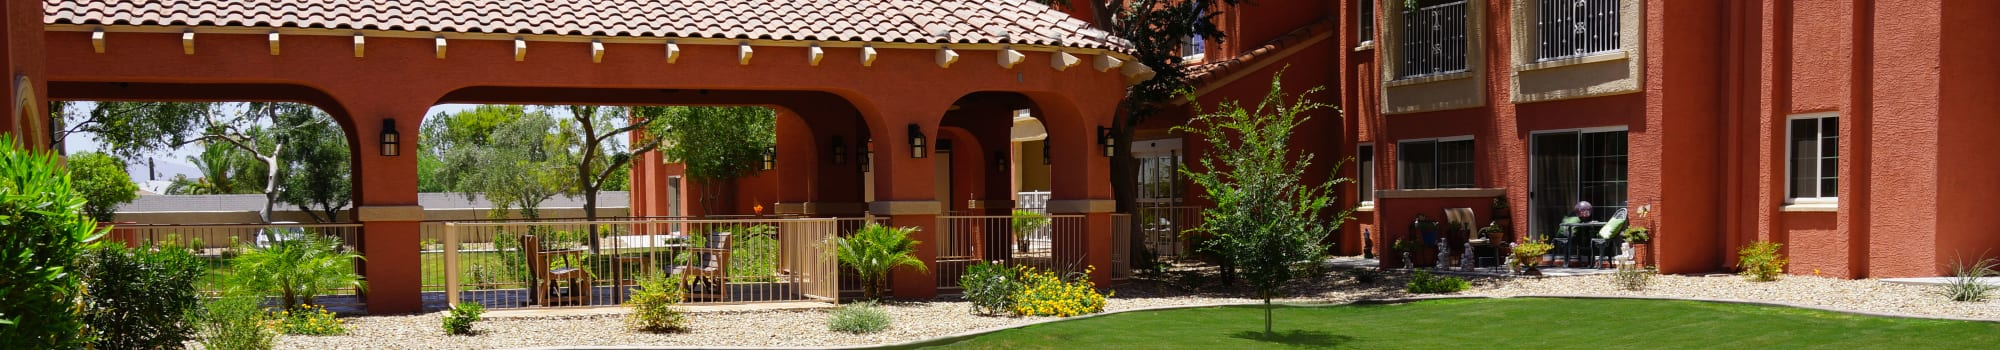 Our communities at Casa Del Rio Senior Living in Peoria, Arizona